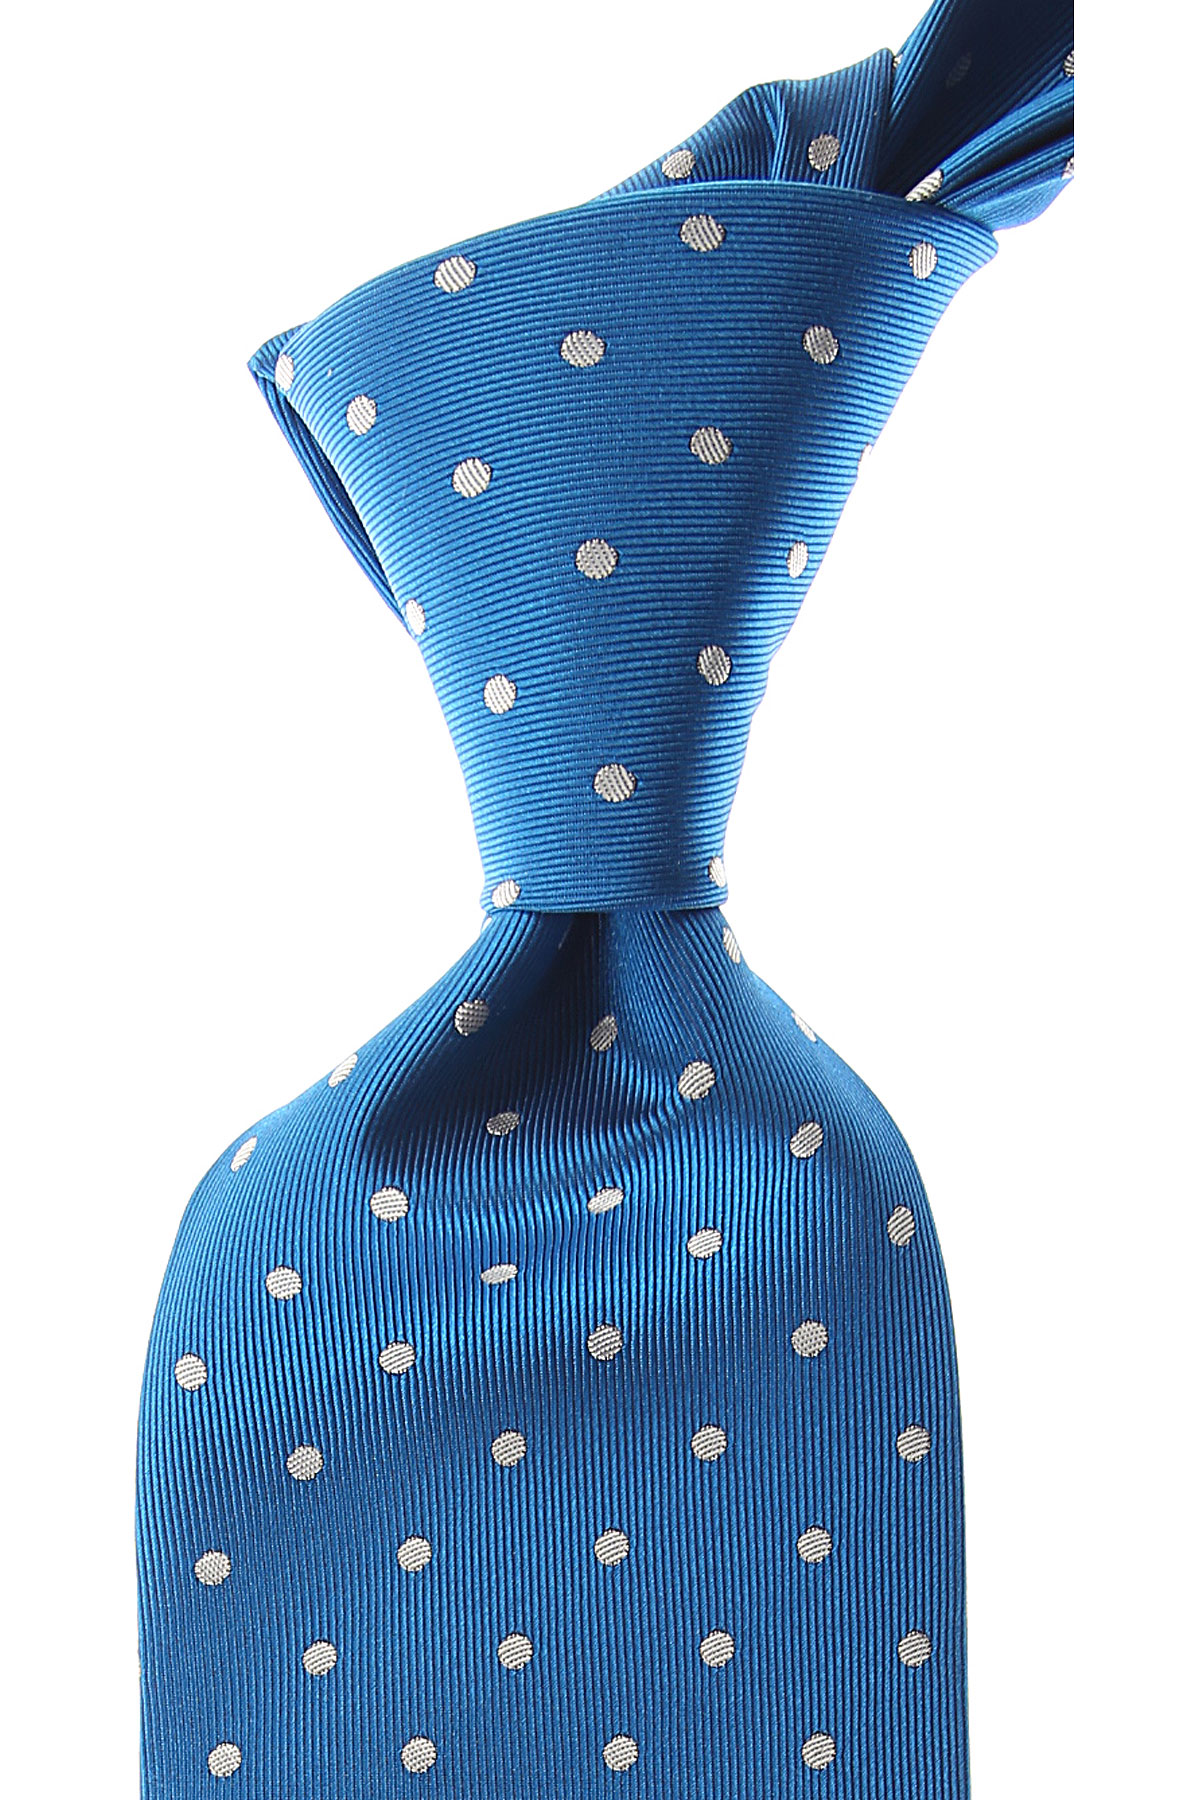 Gianni_Versace_Ties_On_Sale_French_Turquoise_Silk_2019